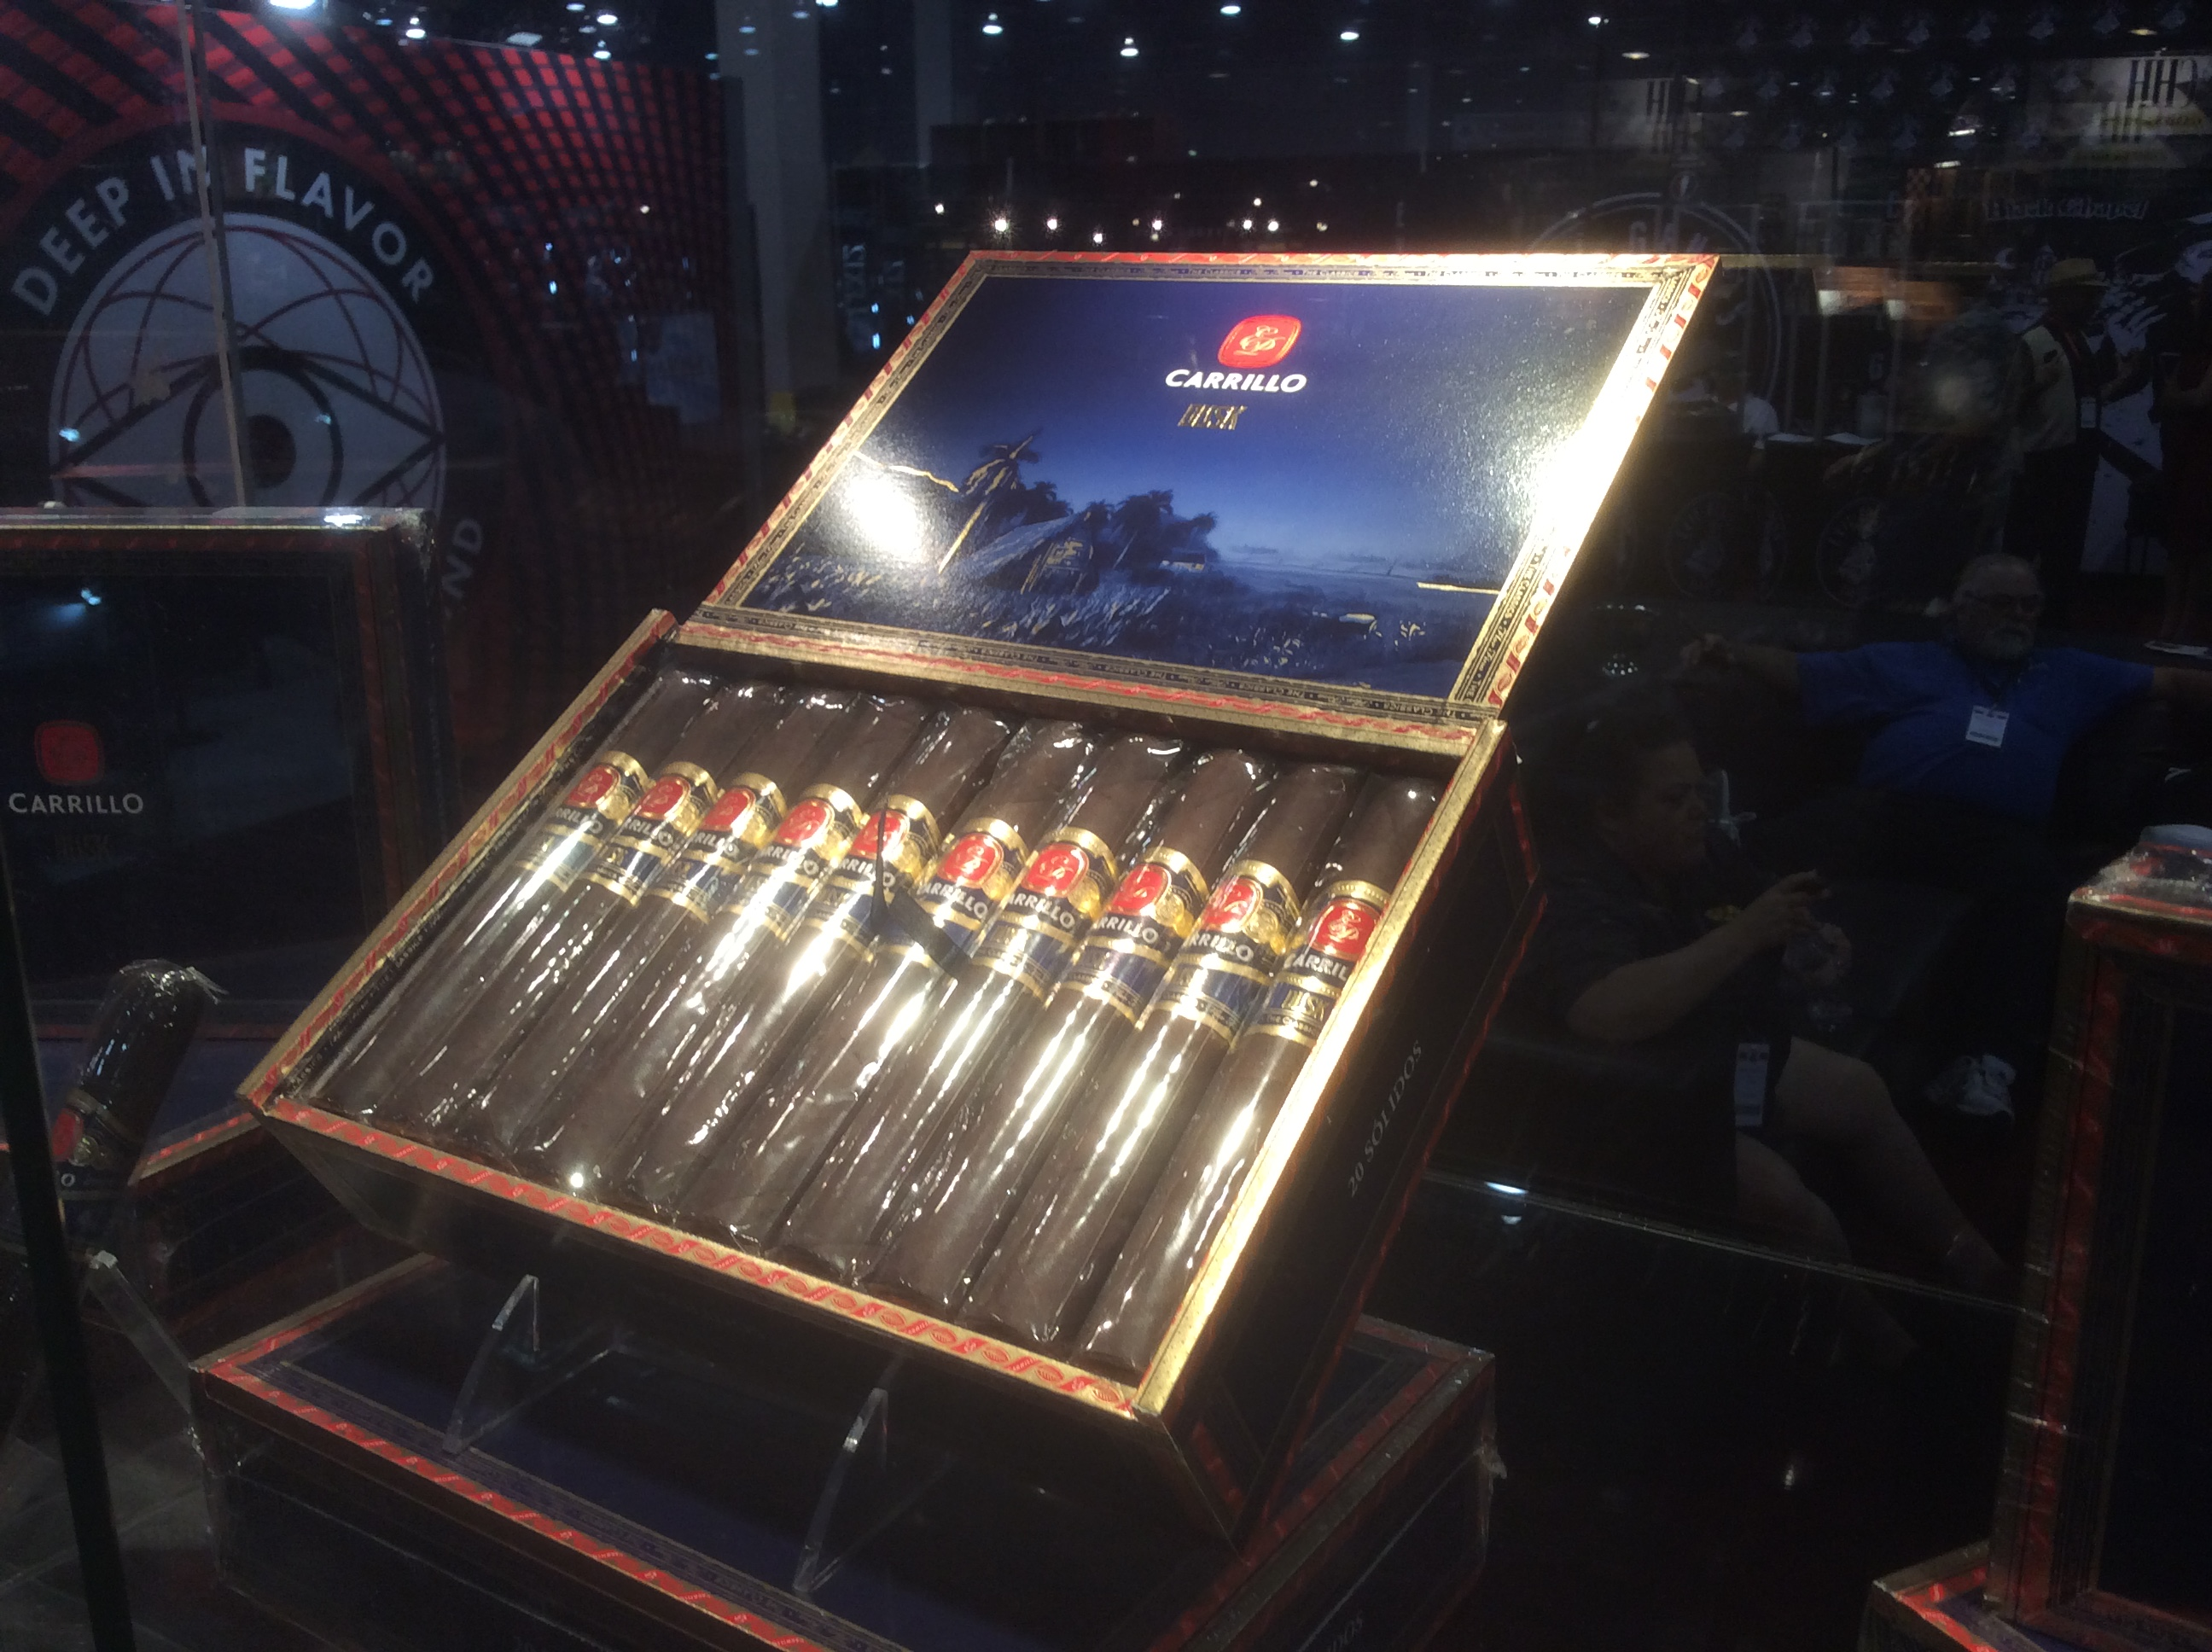 Cigar News: E.P. Carrillo Dusk Makes Debut at 2016 IPCPR Trade Show